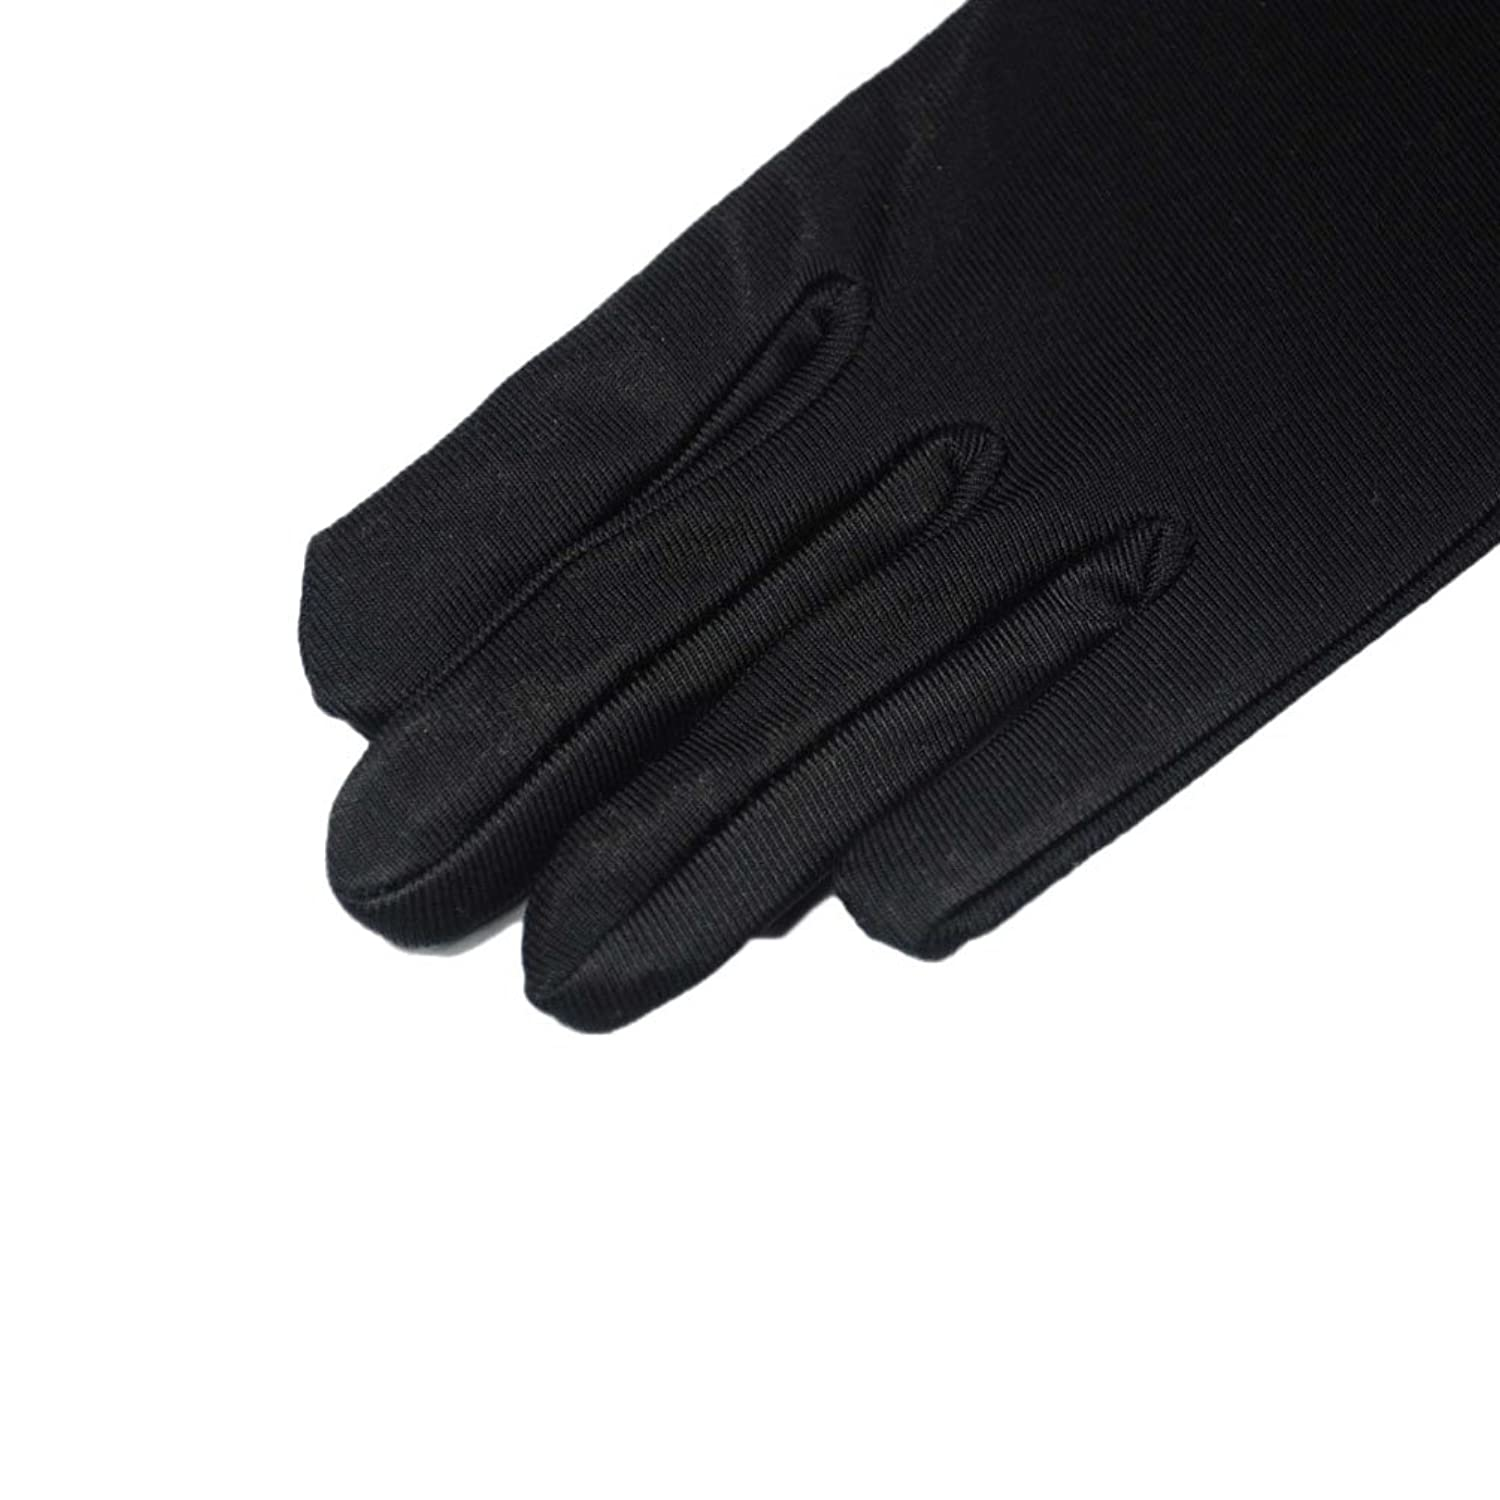 Black gloves evening wear - Amazon Com 22 Classic Adult Size Long Opera Length Satin Gloves Black Clothing